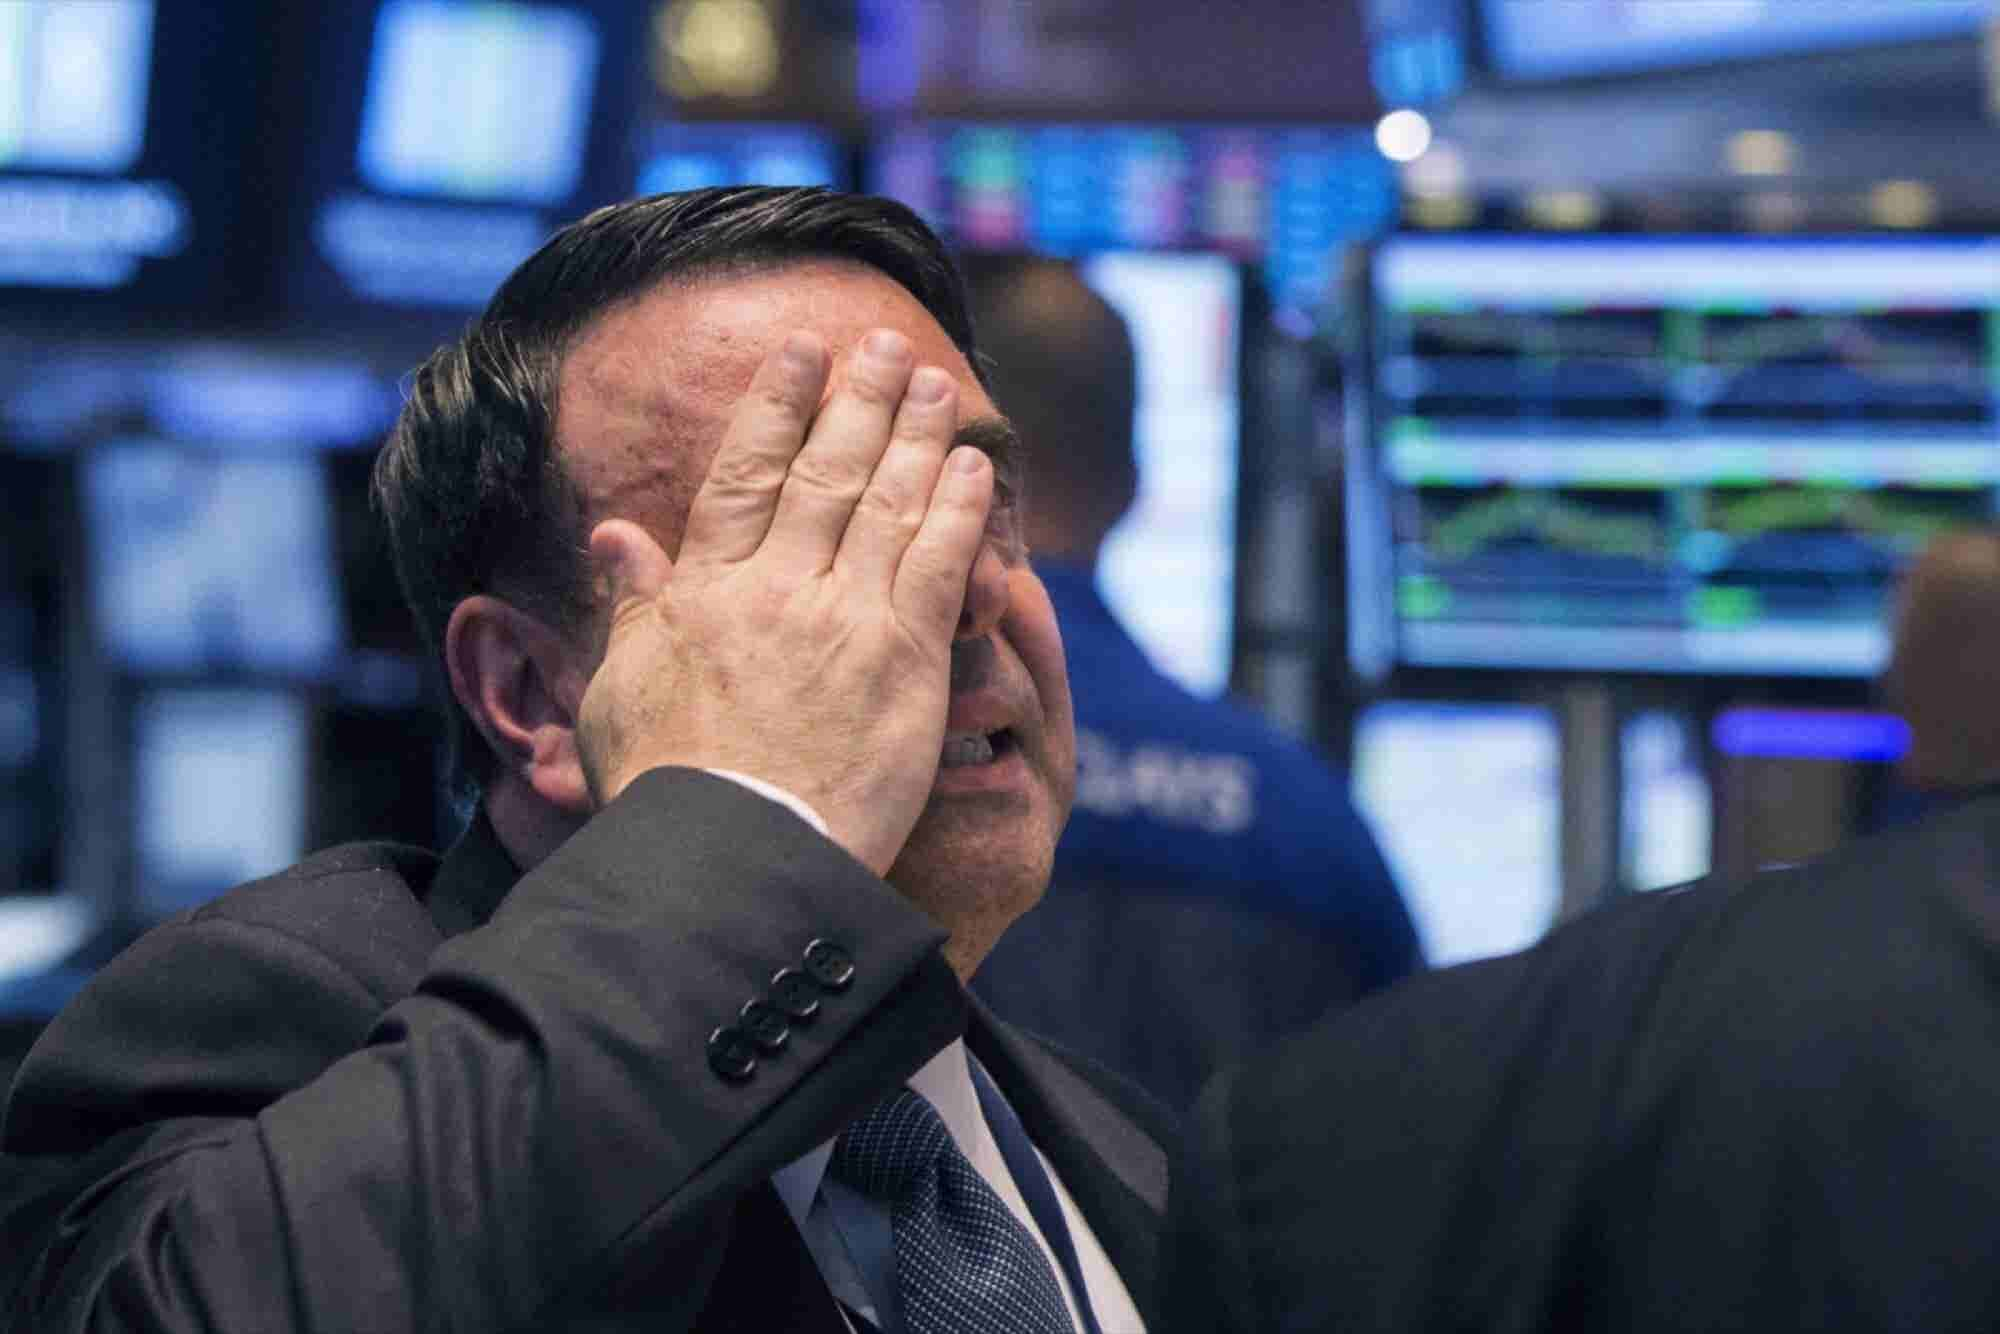 NYSE Says Software Problem Led to Trading Outage